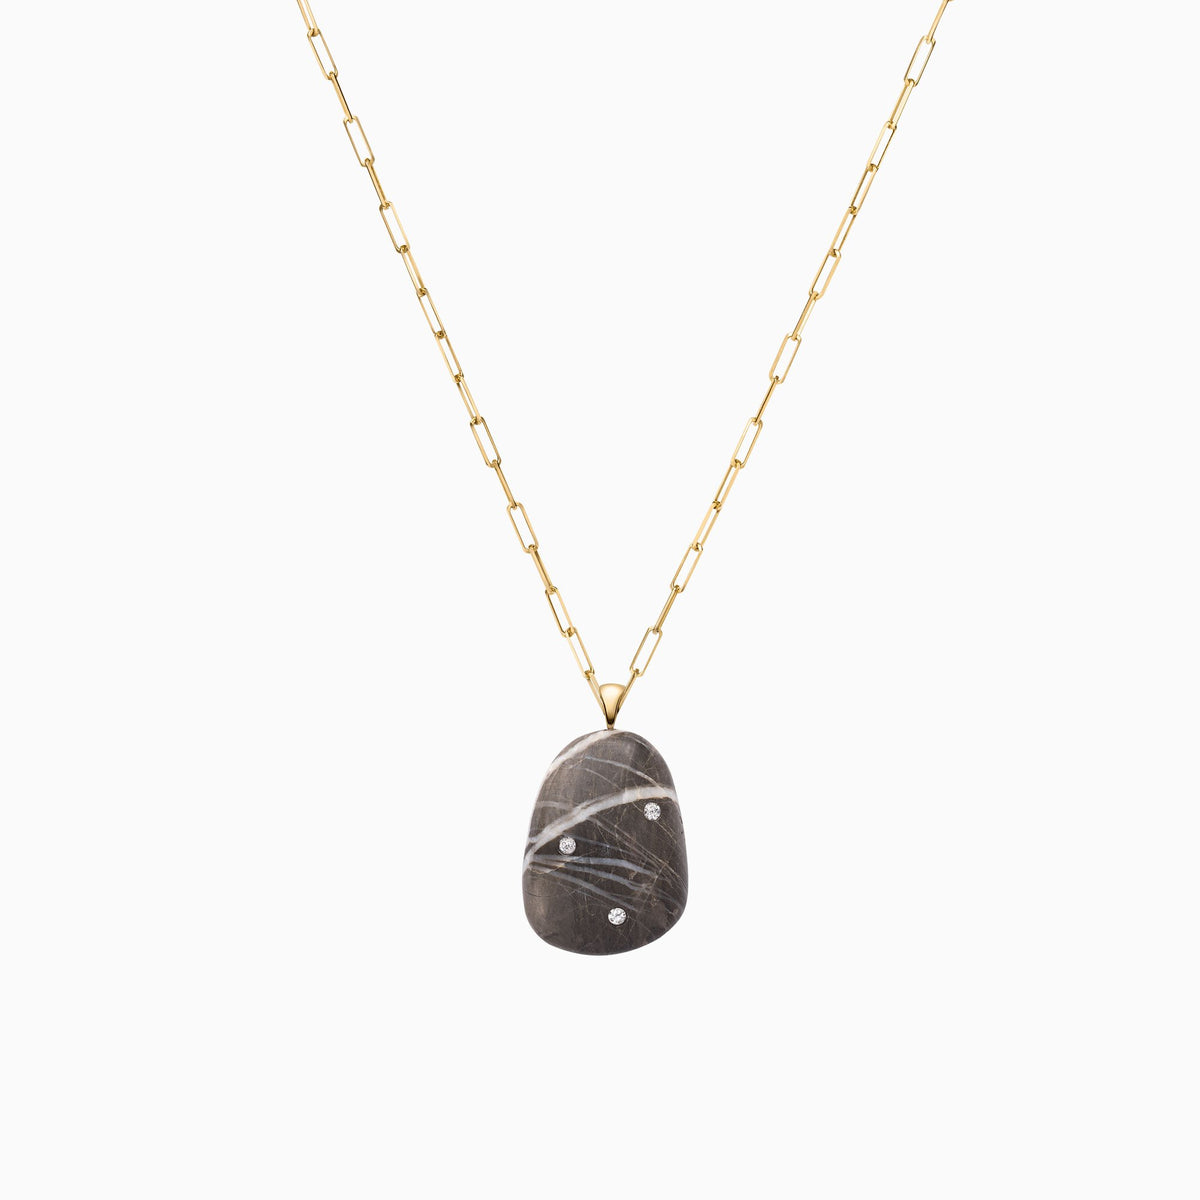 Nessa Designs Jewelry | Necklaces | Ancient Sands Pebble & Diamond